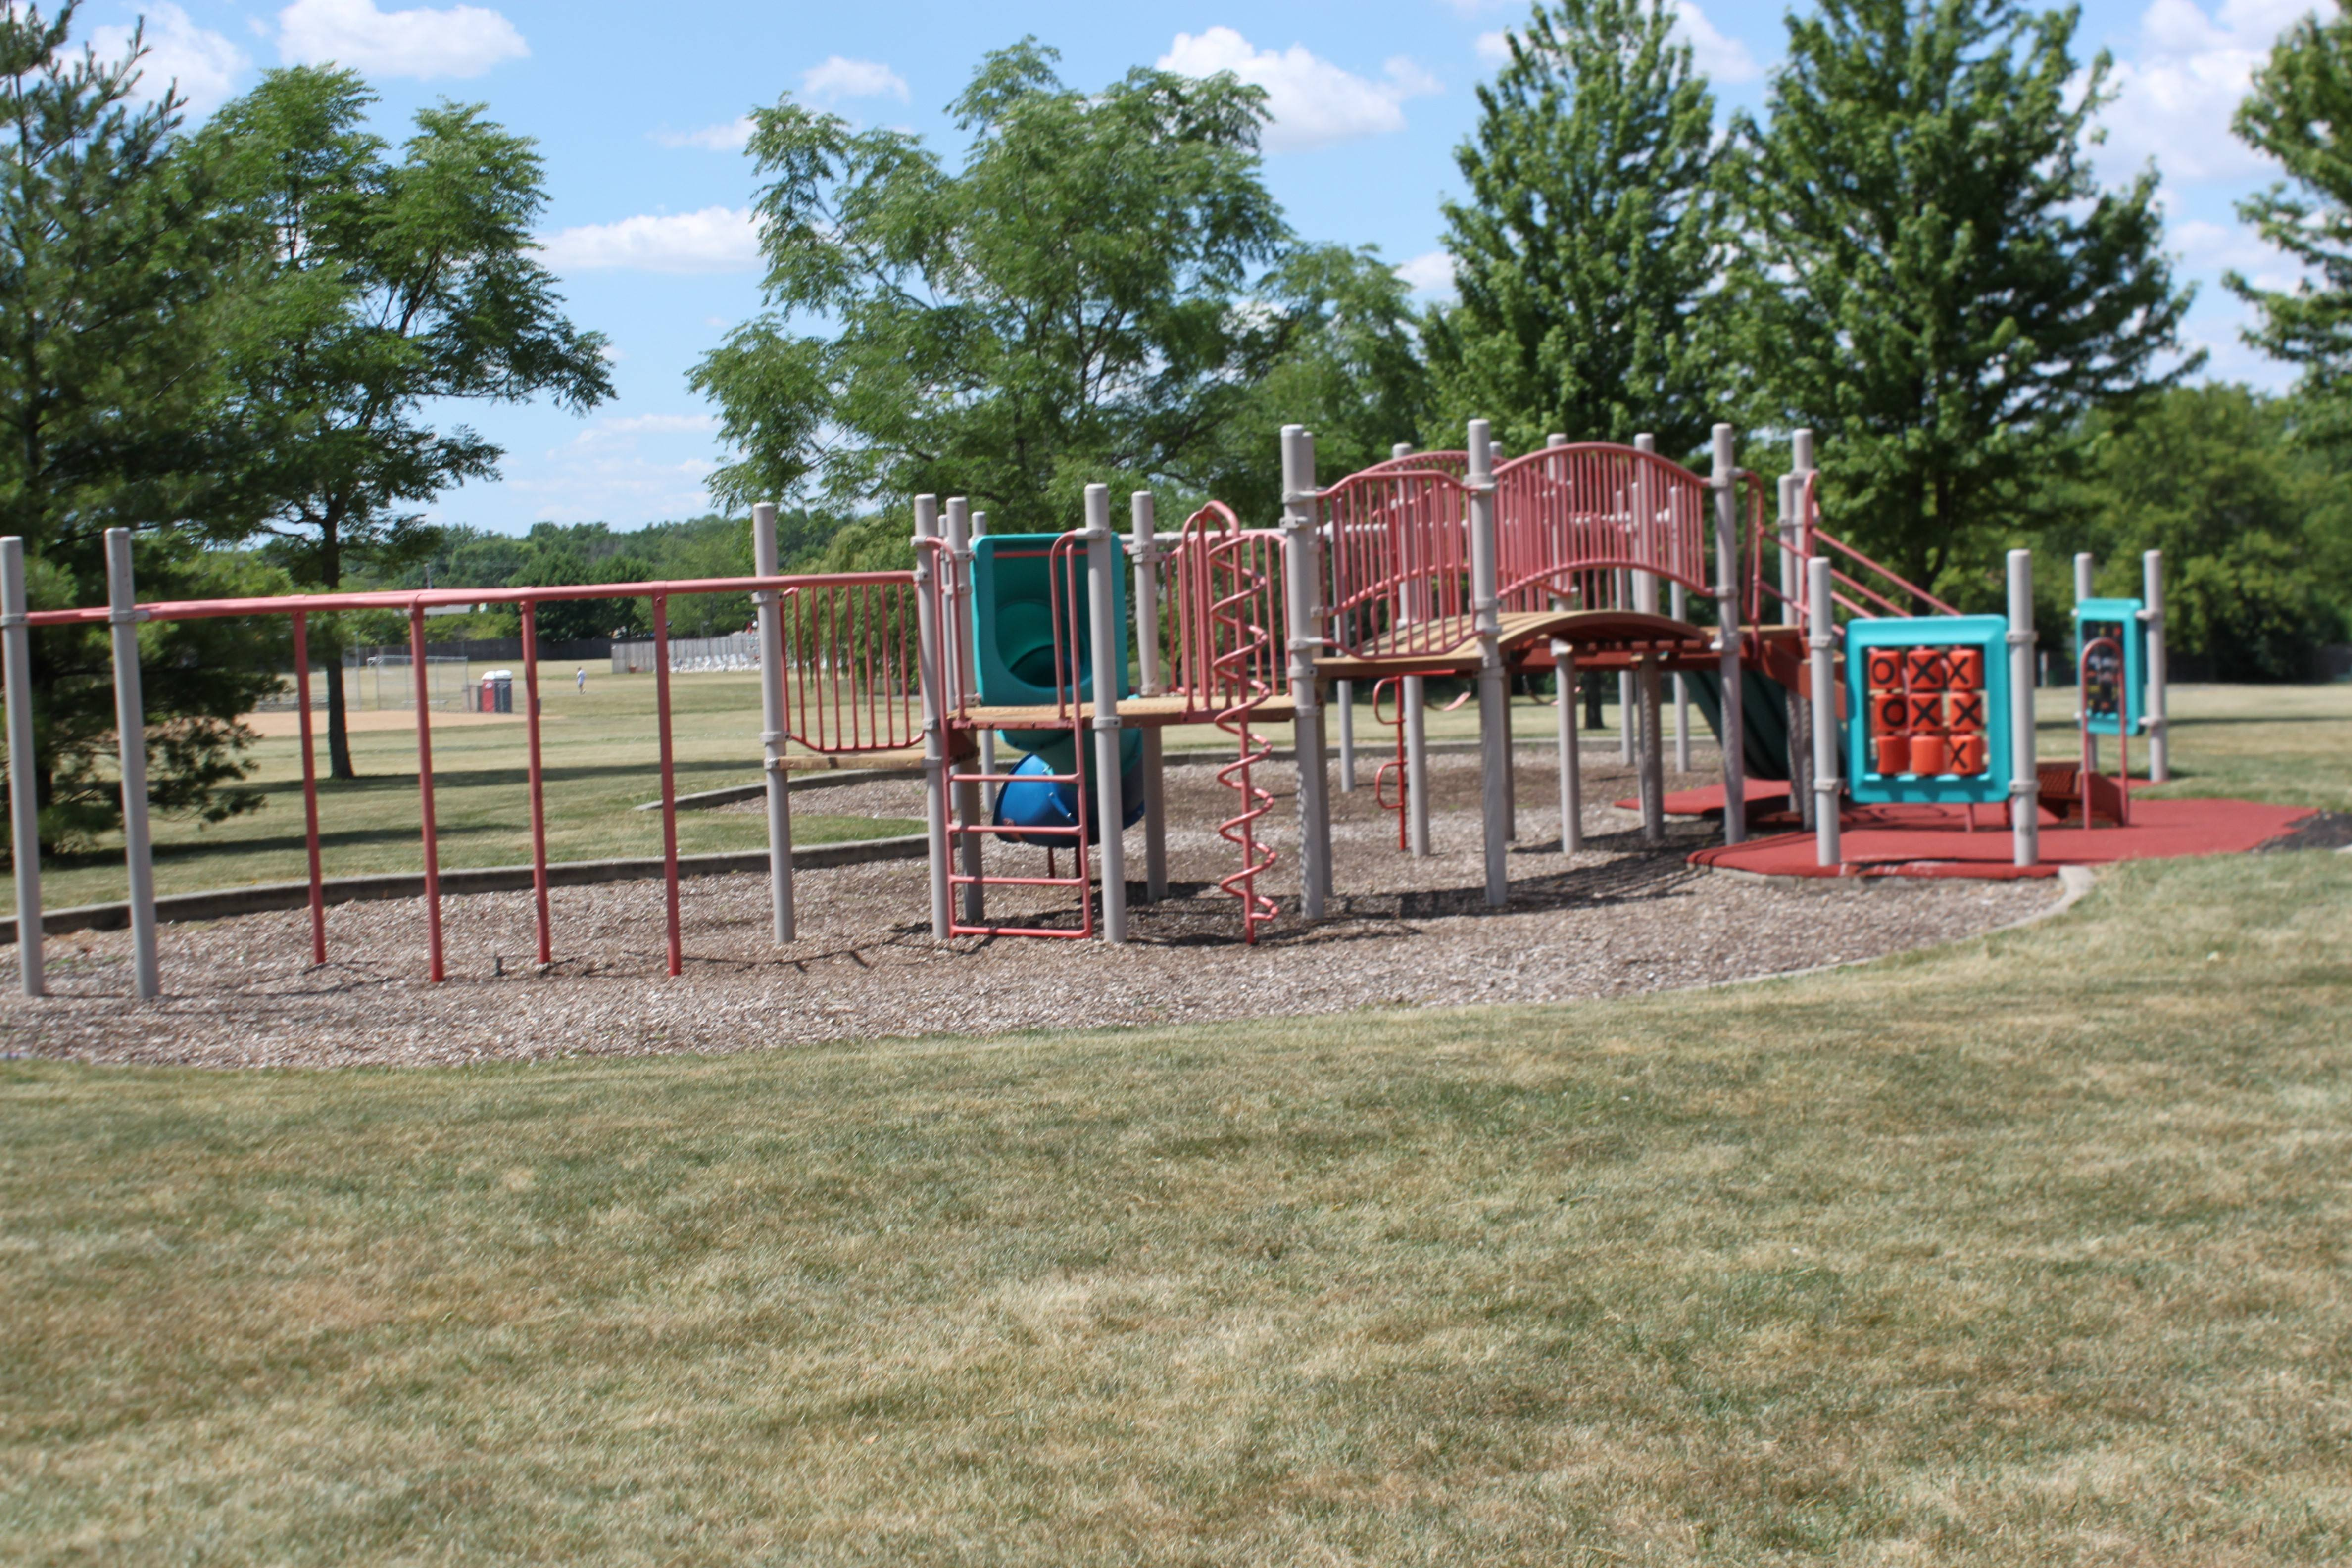 Bloomingdale Park District has plans to replace the playground equipment at Seasons Four Park in Roselle. The replacement is scheduled to begin in late summer or early fall.